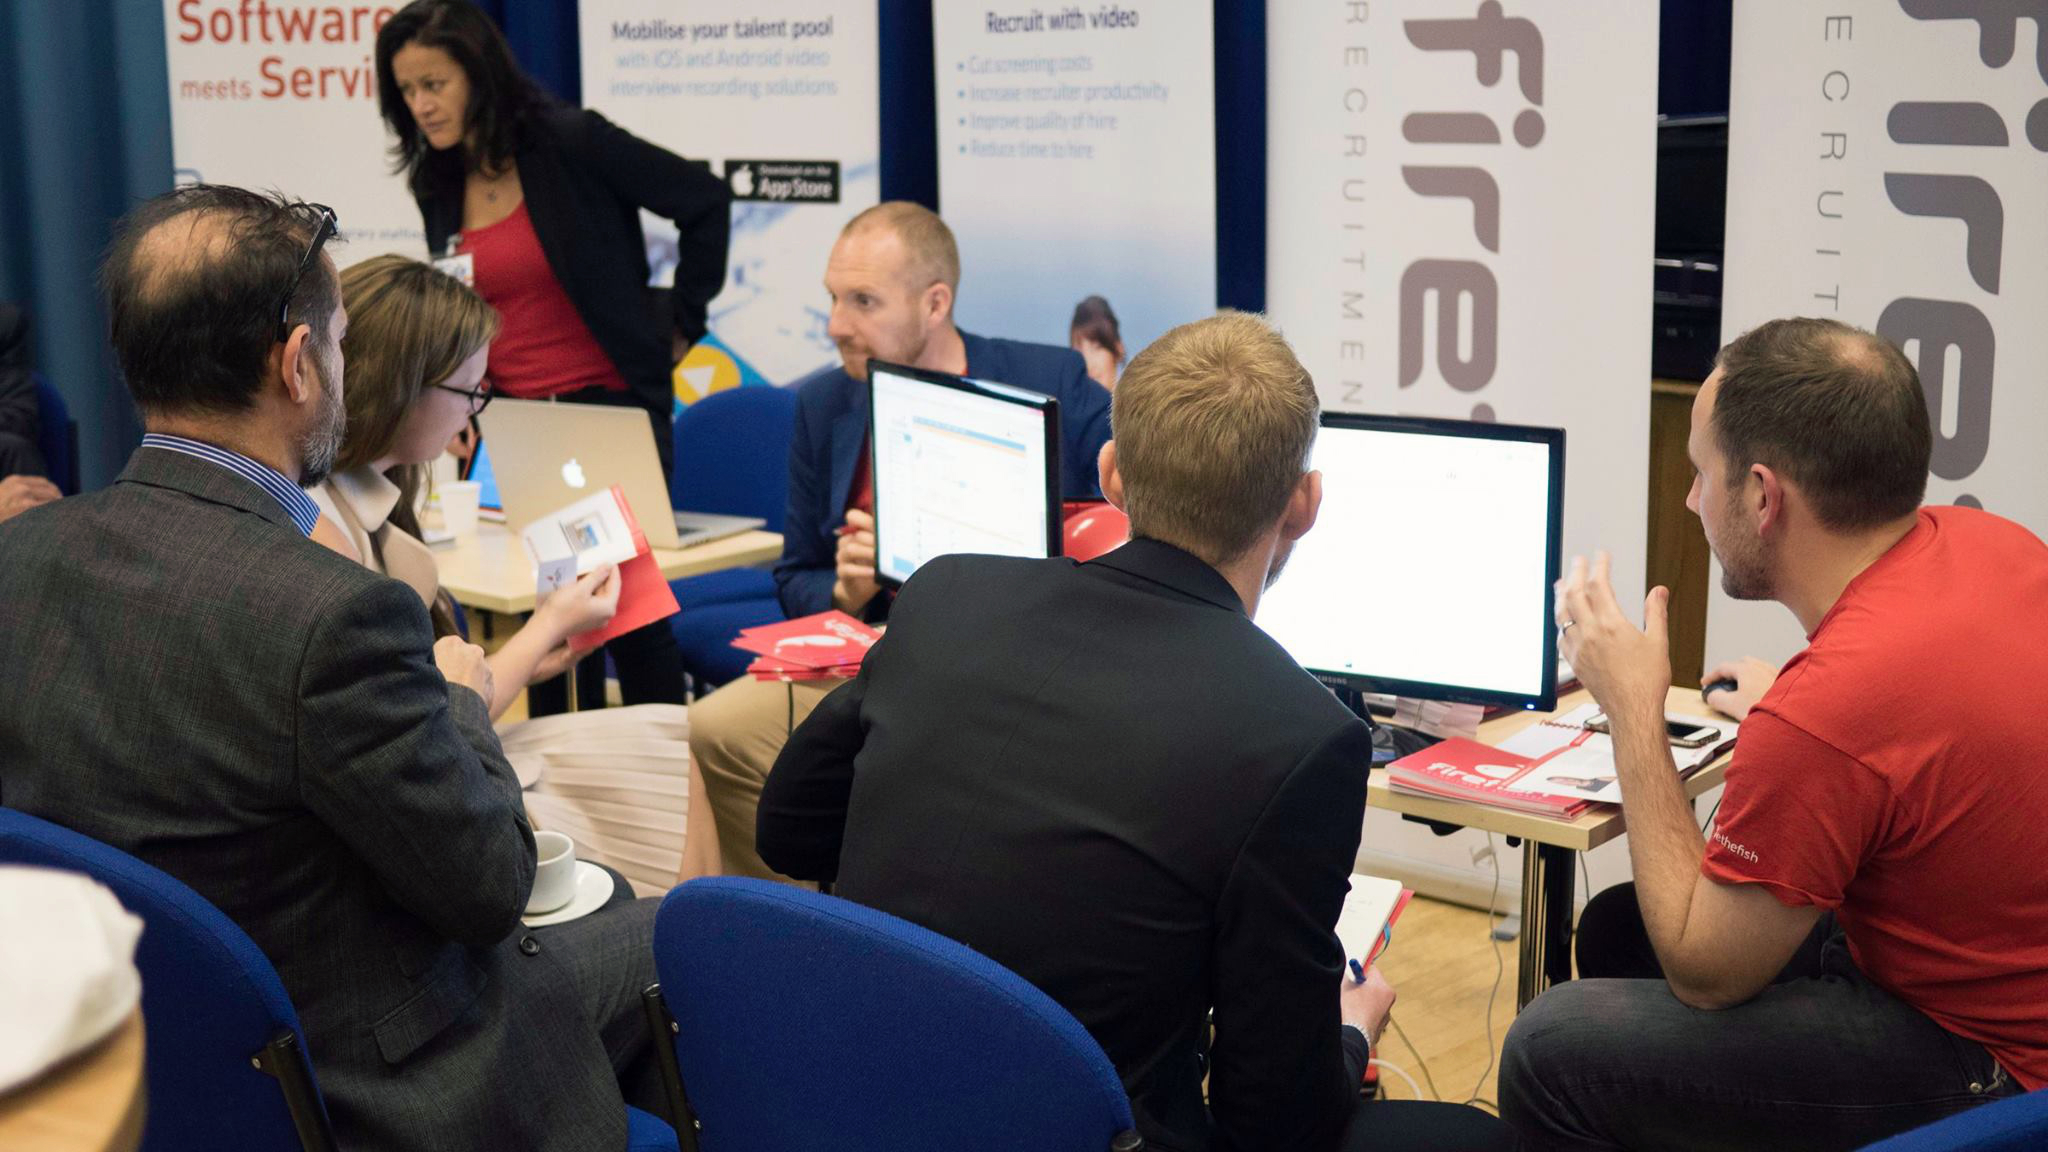 Cammy McLennan does a demo at the UK Recruiter Showcase